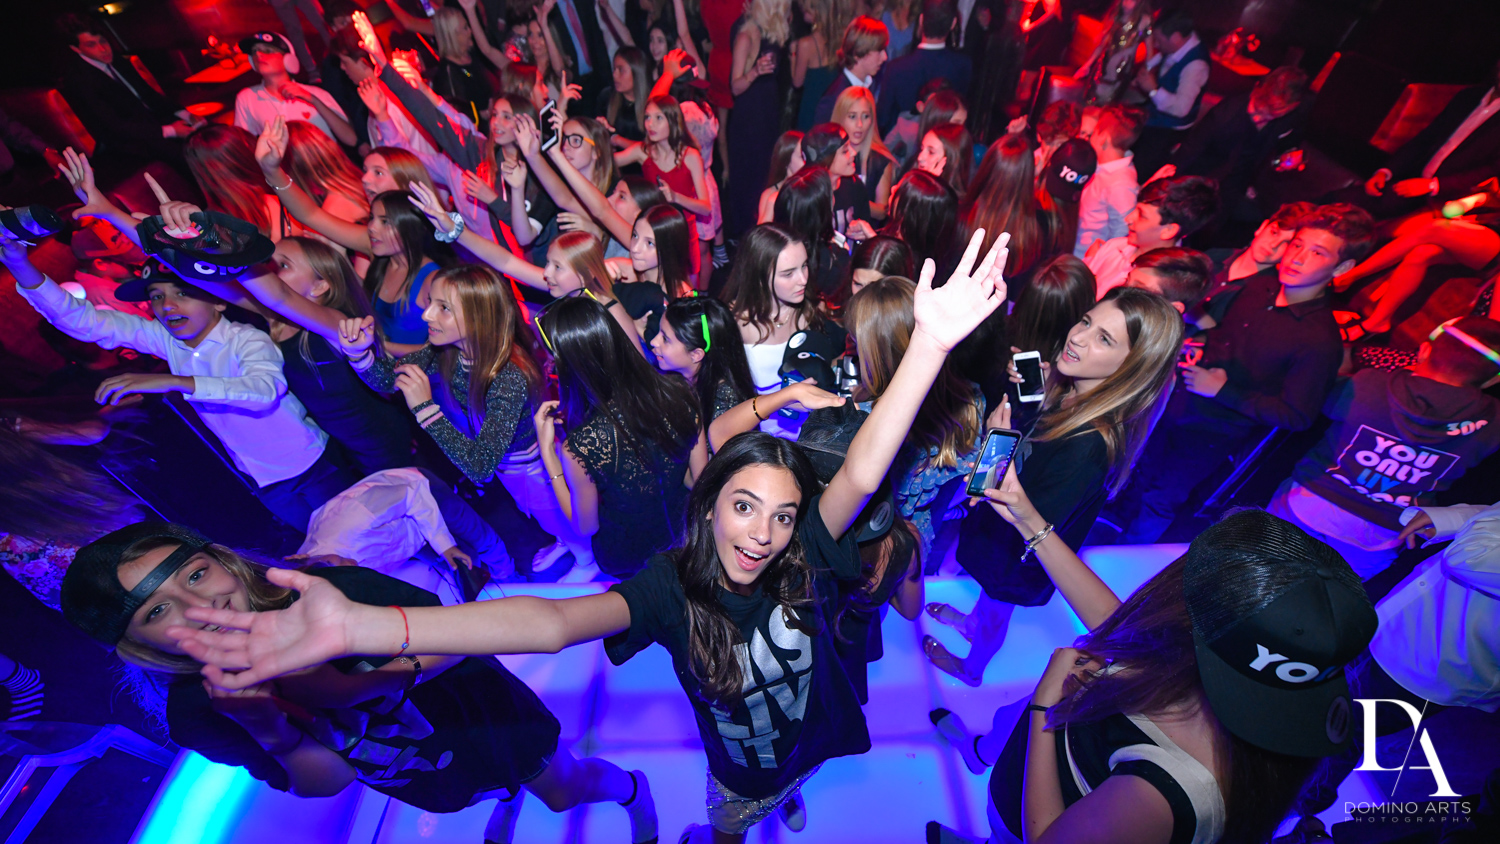 crowd picture at Nightclub Bat Mitzvah at LIV in Fontainebleau Miami by Domino Arts Photography